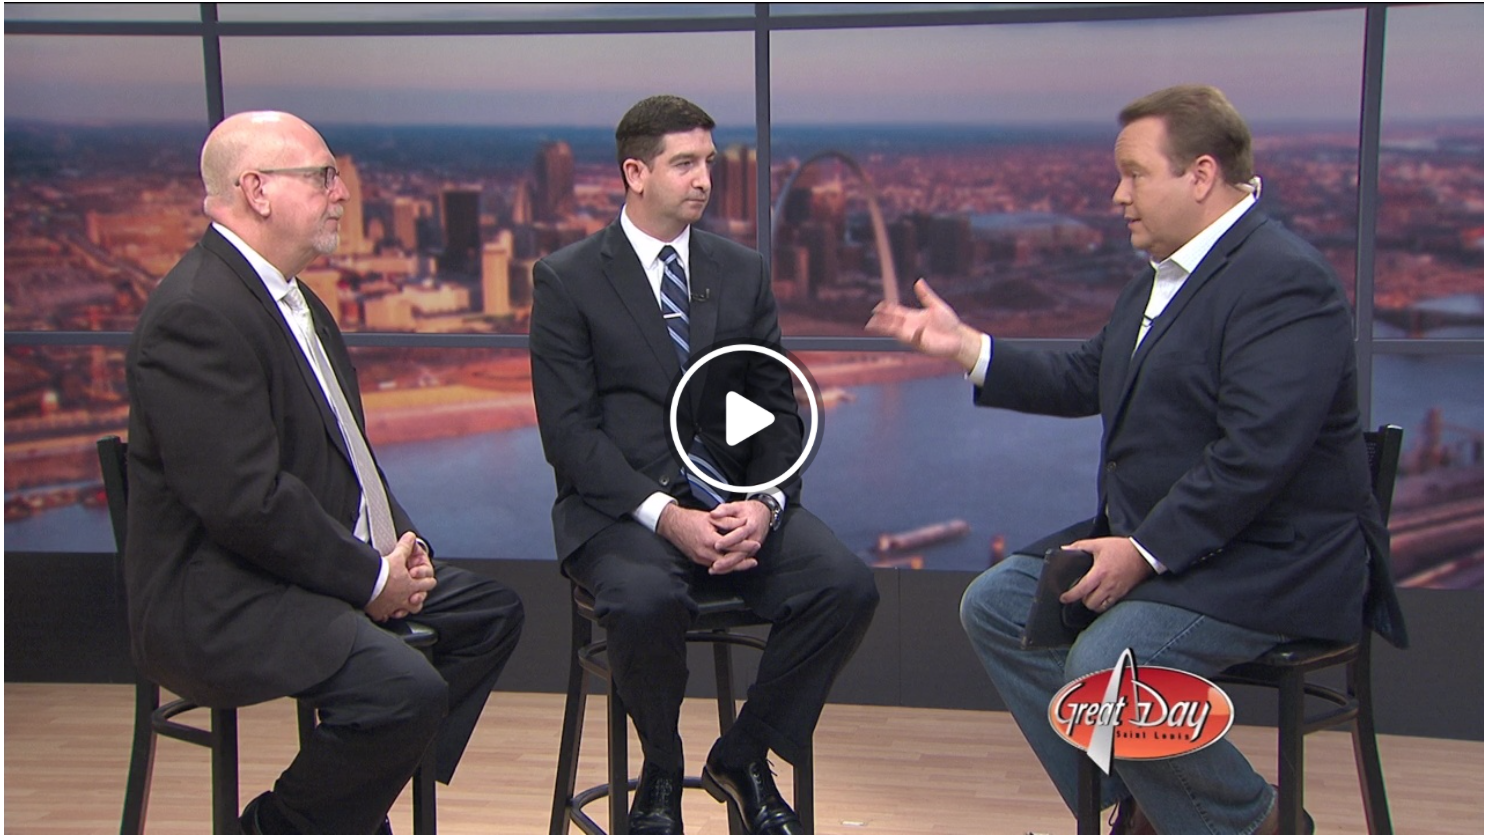 Money Matters Monday - Tyson Eagen, CPA makes another guest appearance on Great Day St. Louis to discuss Charitable Distributions.